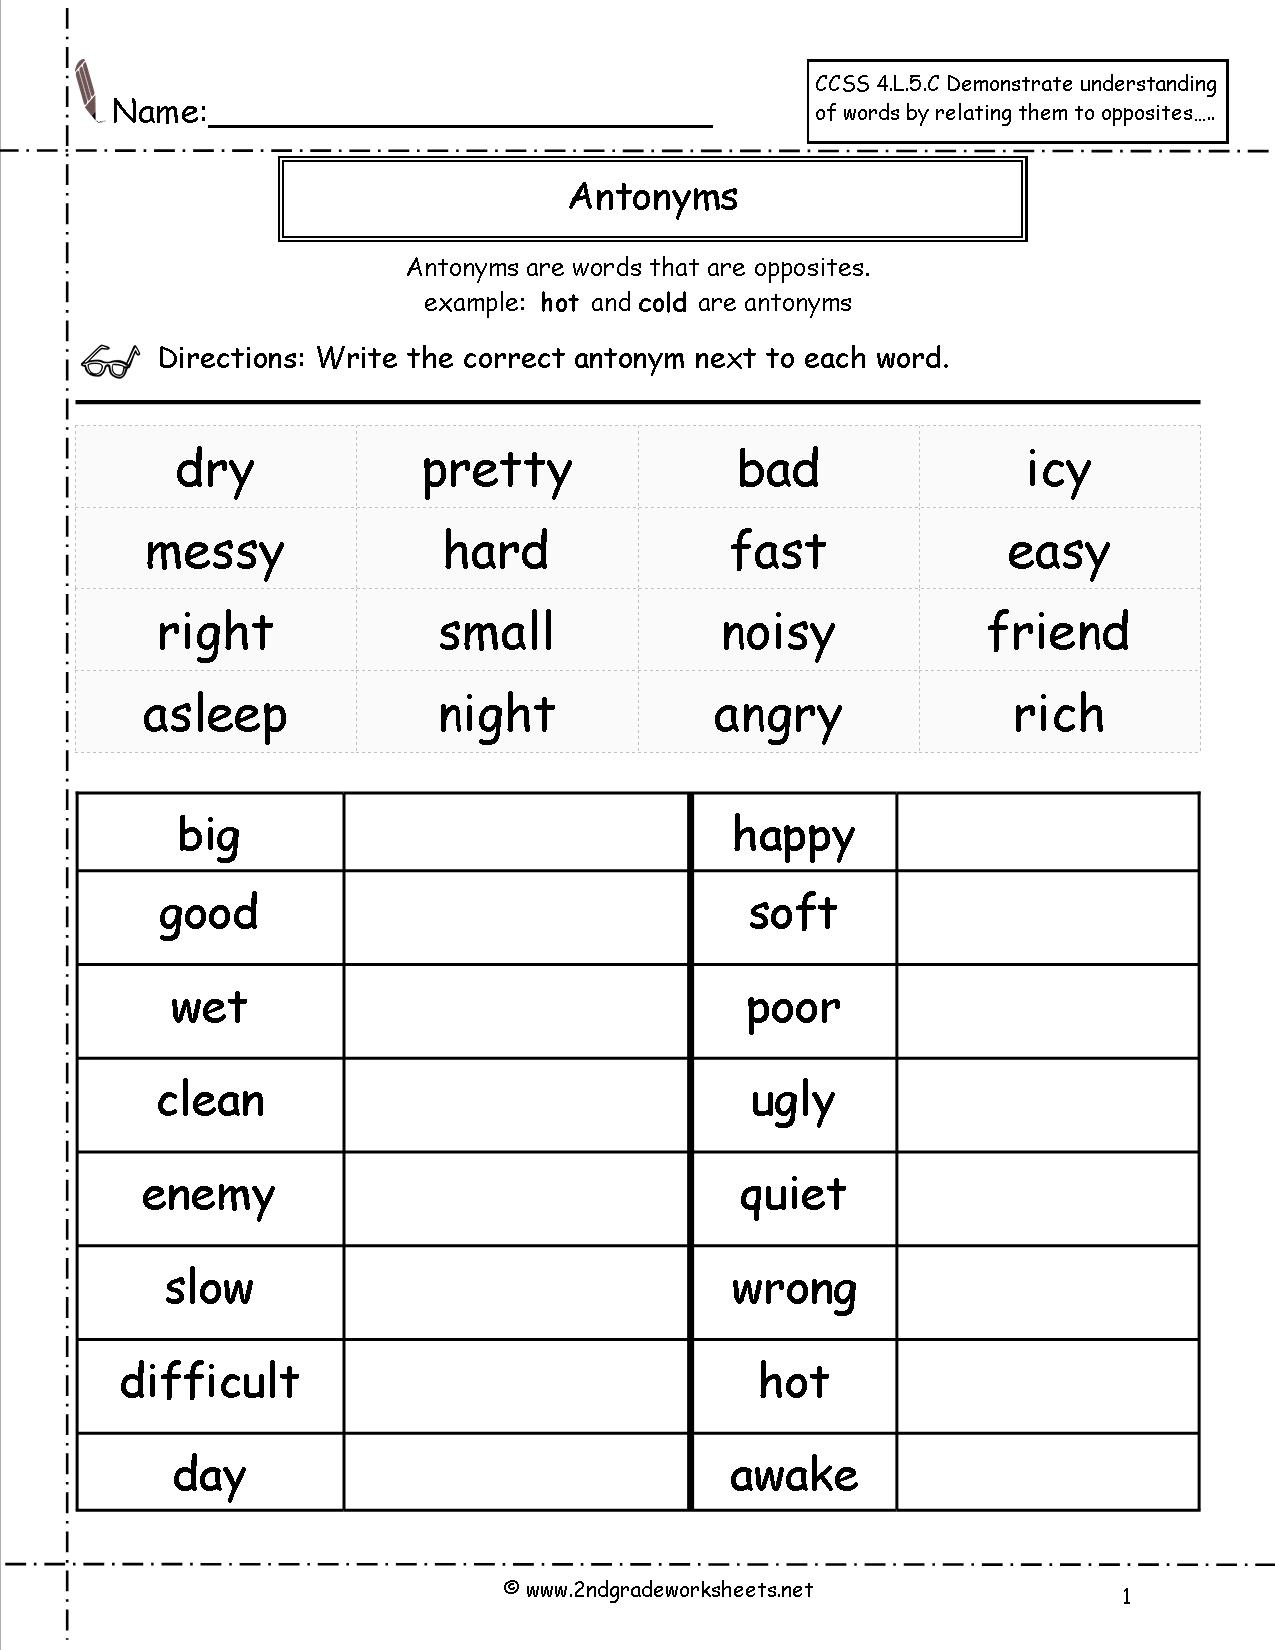 Free Language/grammar Worksheets And Printouts - Free Printable Activity Sheets For 2Nd Grade